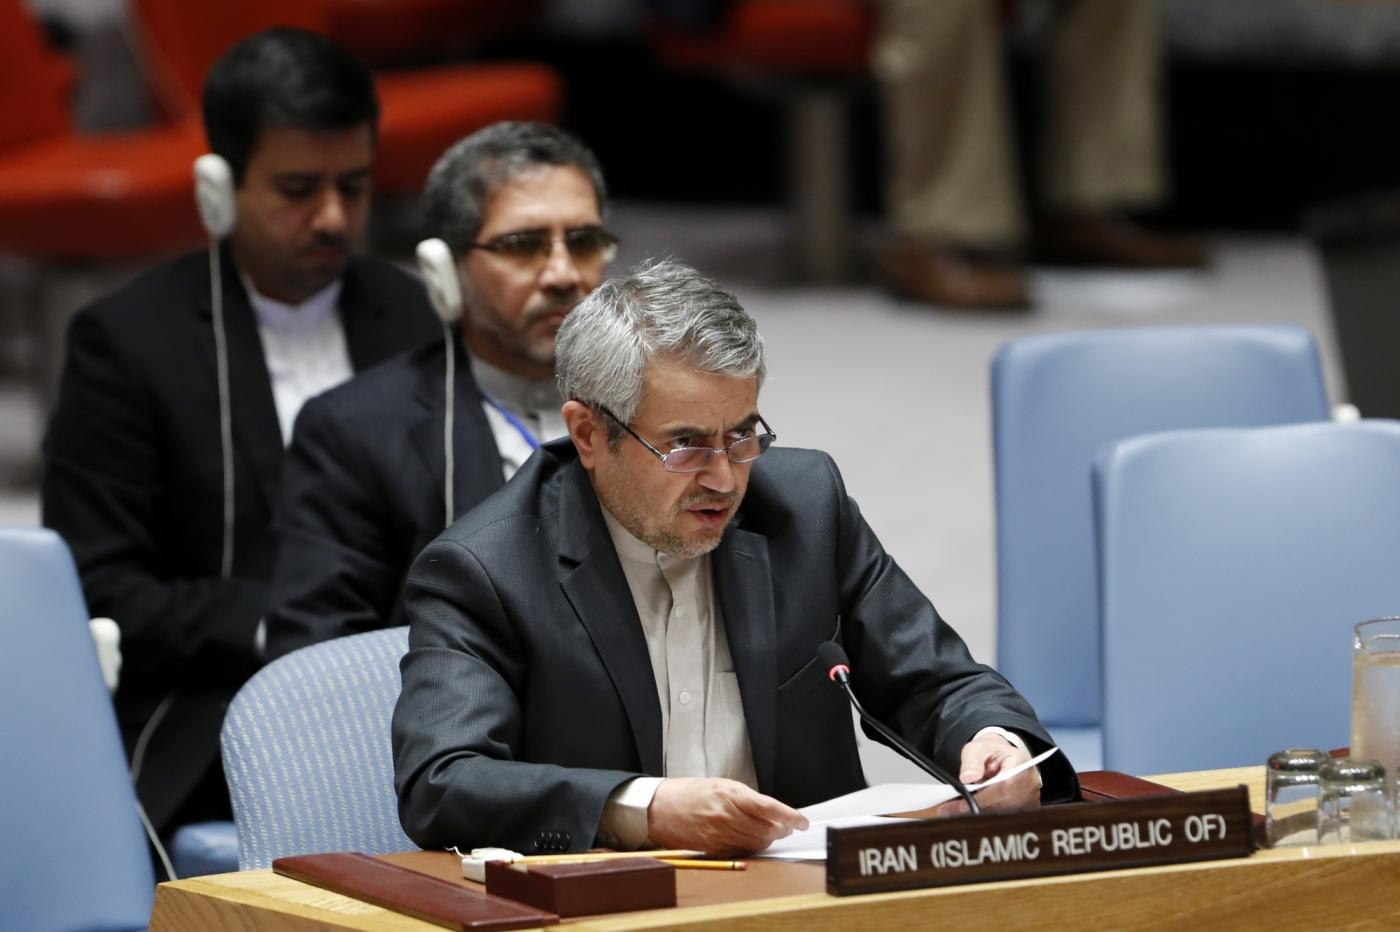 UNITED NATIONS, Sept. 12, 2018 (Xinhua) -- Iran's ambassador to the United Nations (UN) Gholamali Khoshroo (Front) speaks at a Security Council meeting on the situation in Syria's Idlib province at the UN headquarters in New York, on Sept. 11, 2018. As a seemingly imminent full-scale offensive on Syria's Idlib province looms, the UN Security Council on Tuesday remained deeply divided, prompting a no-escalation plea from Secretary-General Antonio Guterres. (Xinhua/Li Muzi/IANS) by .